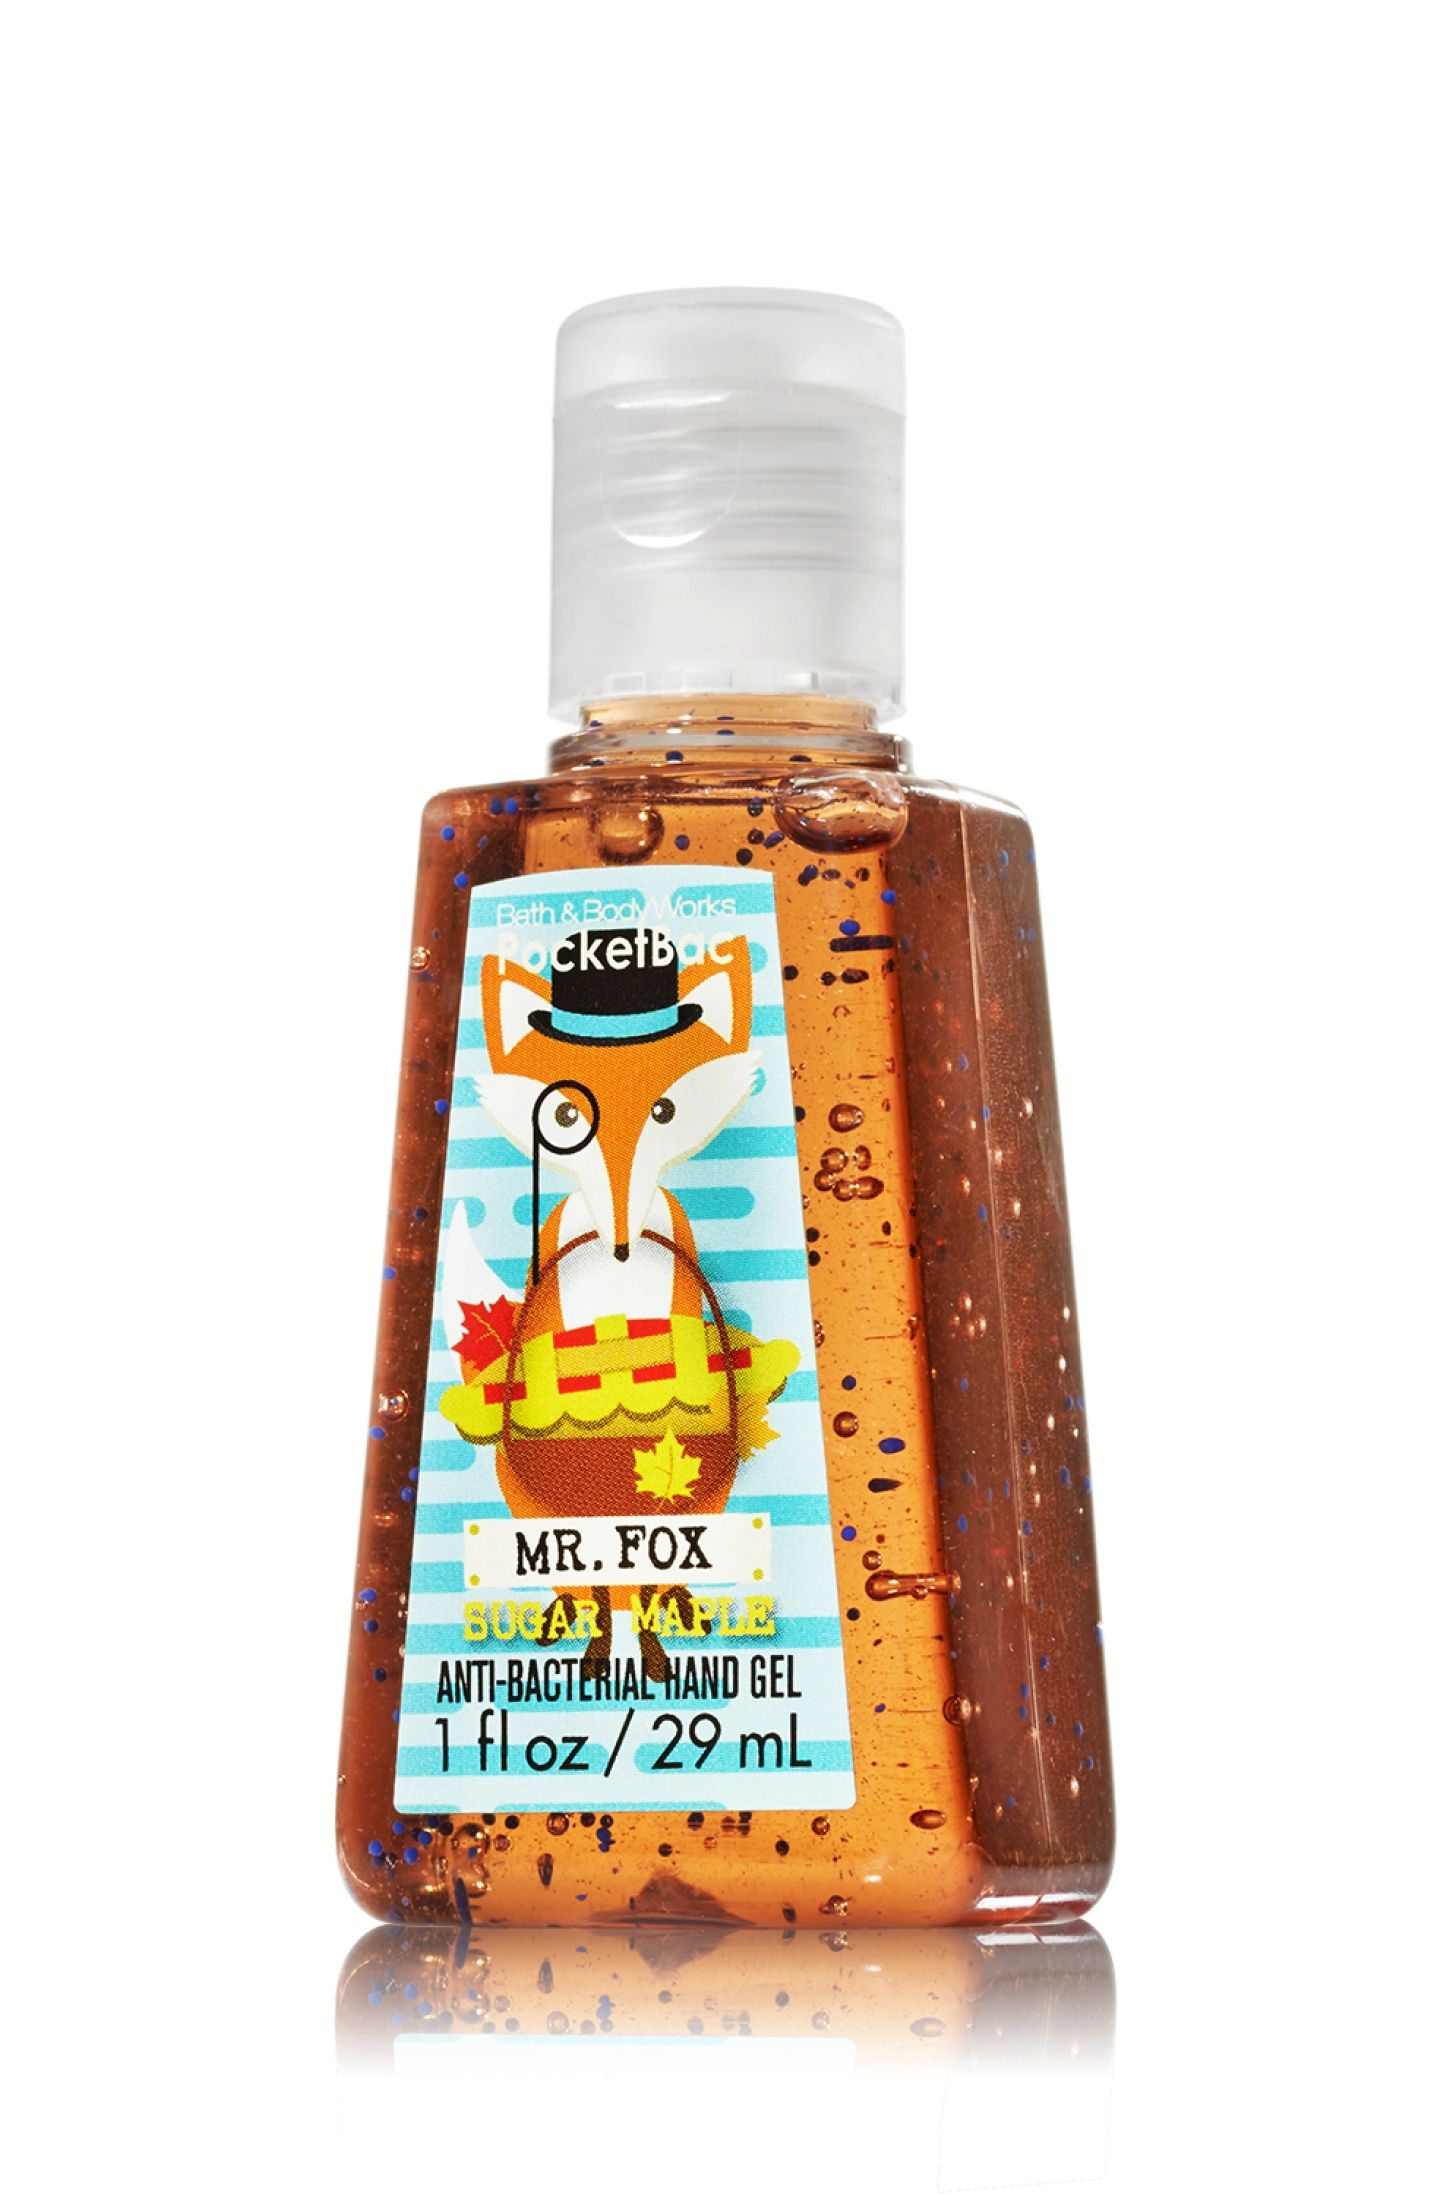 Bath Body Works Pocketbac Sanitizing Hand Gel Sugar Maple